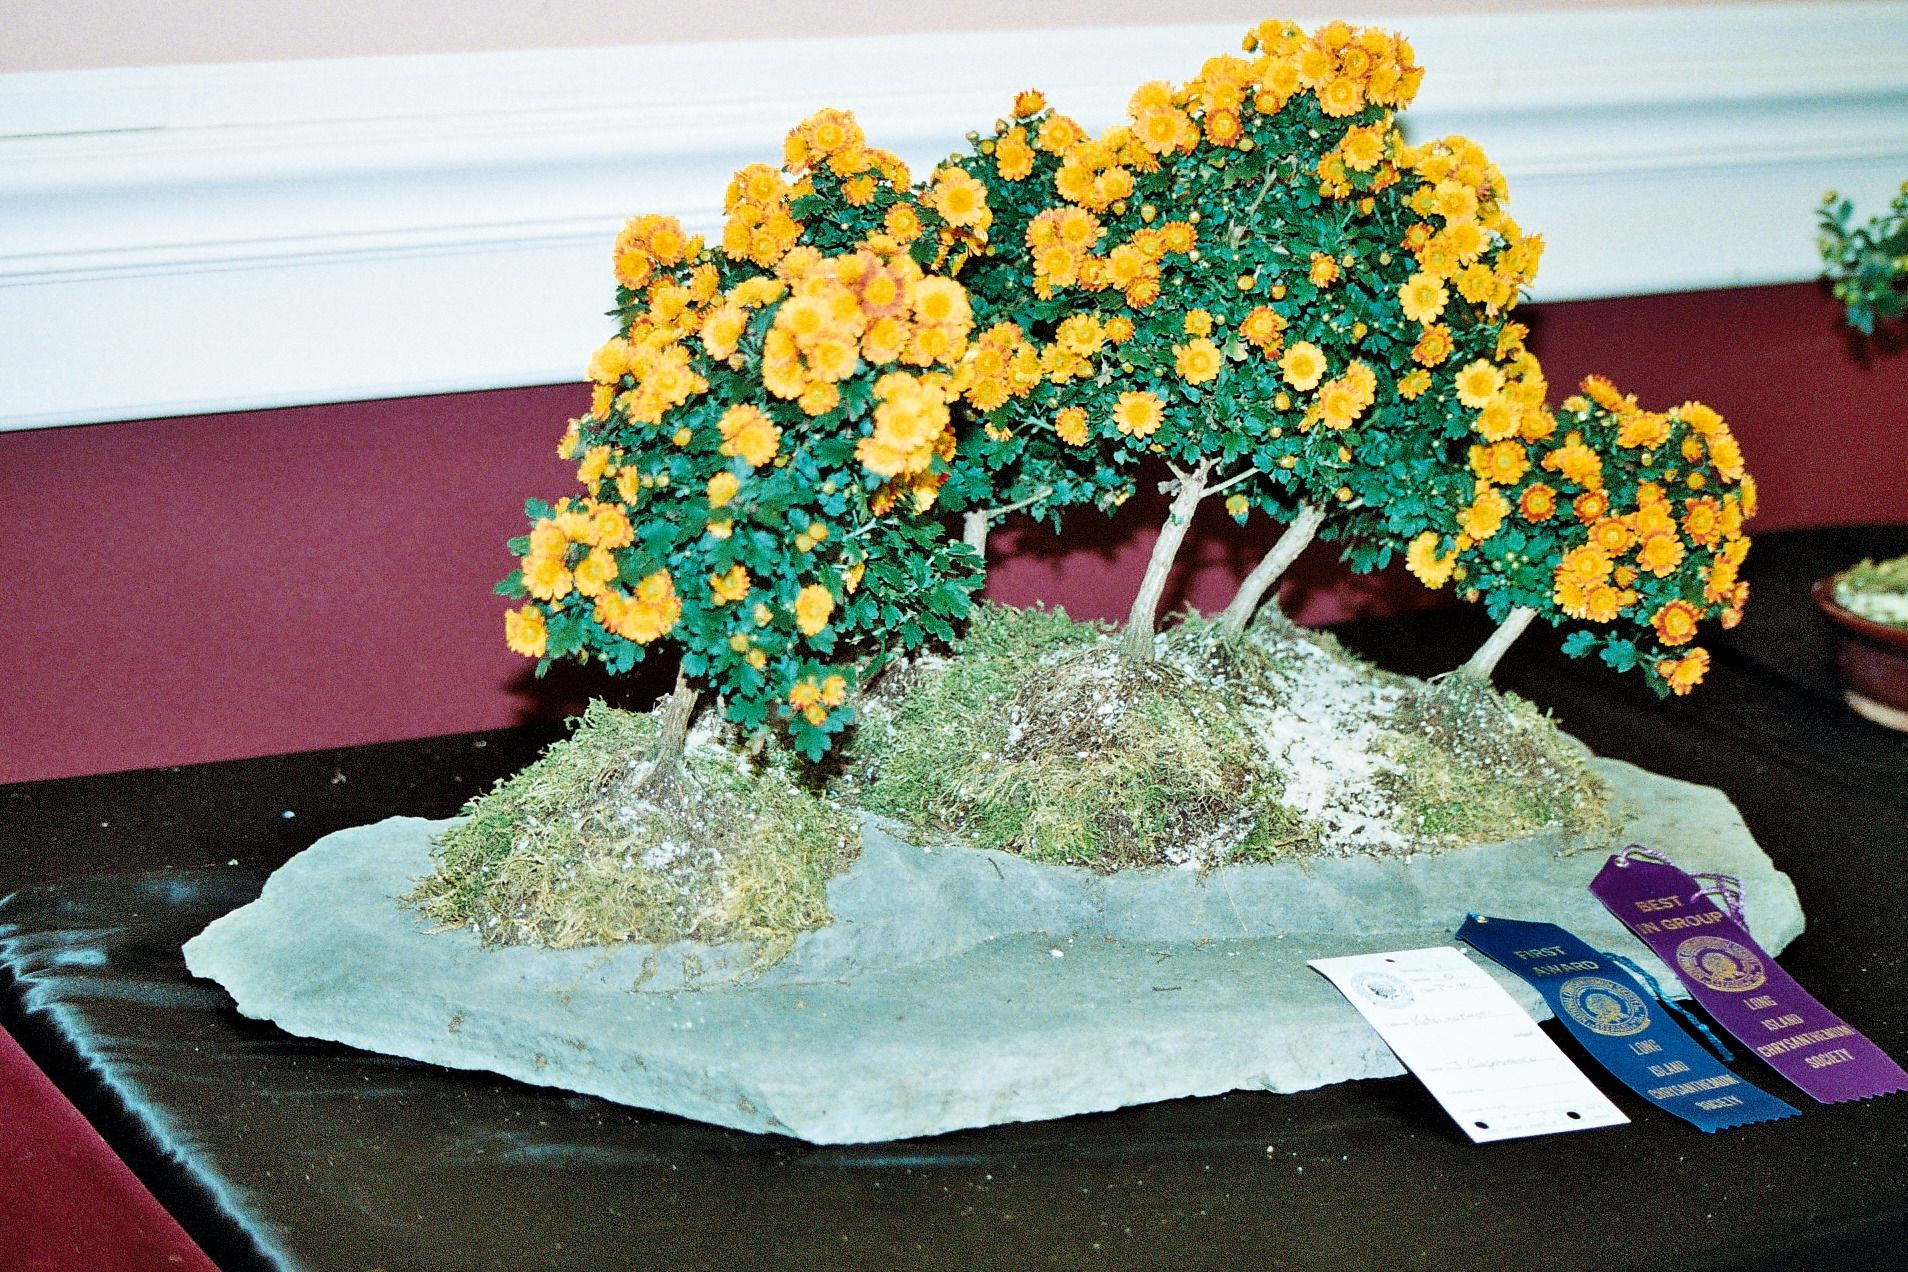 Bonsai Chrysanthemum Grown And Photographed By John Capobianco Chrysanthemum Growing Chrysanthemum Floral Wreath